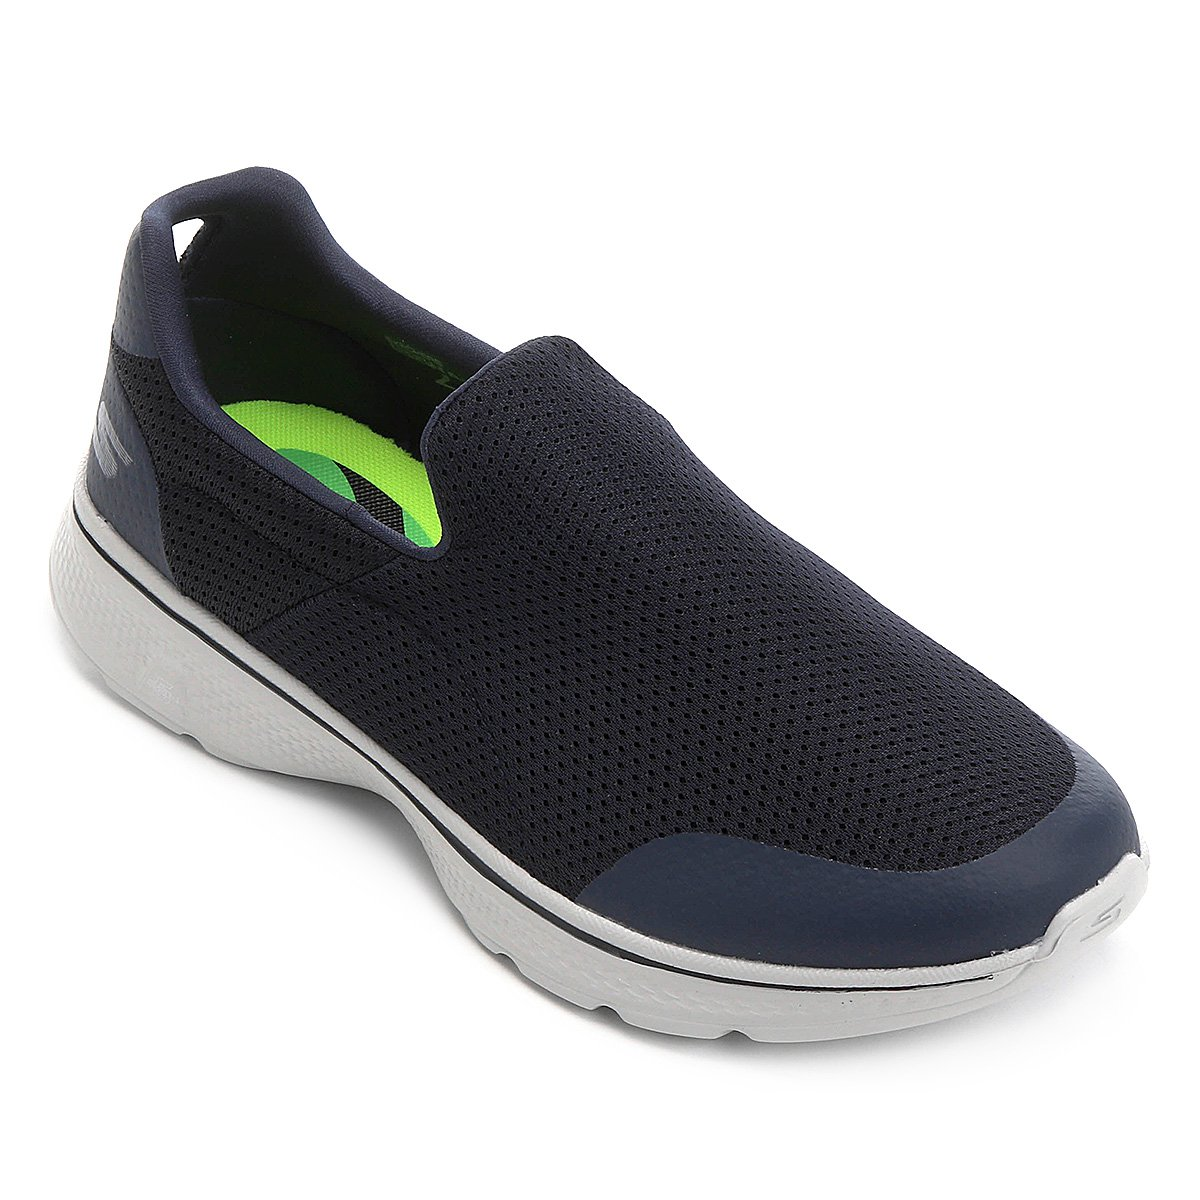 287e24da4dc Tênis Skechers Go Walk 4 - Incredible